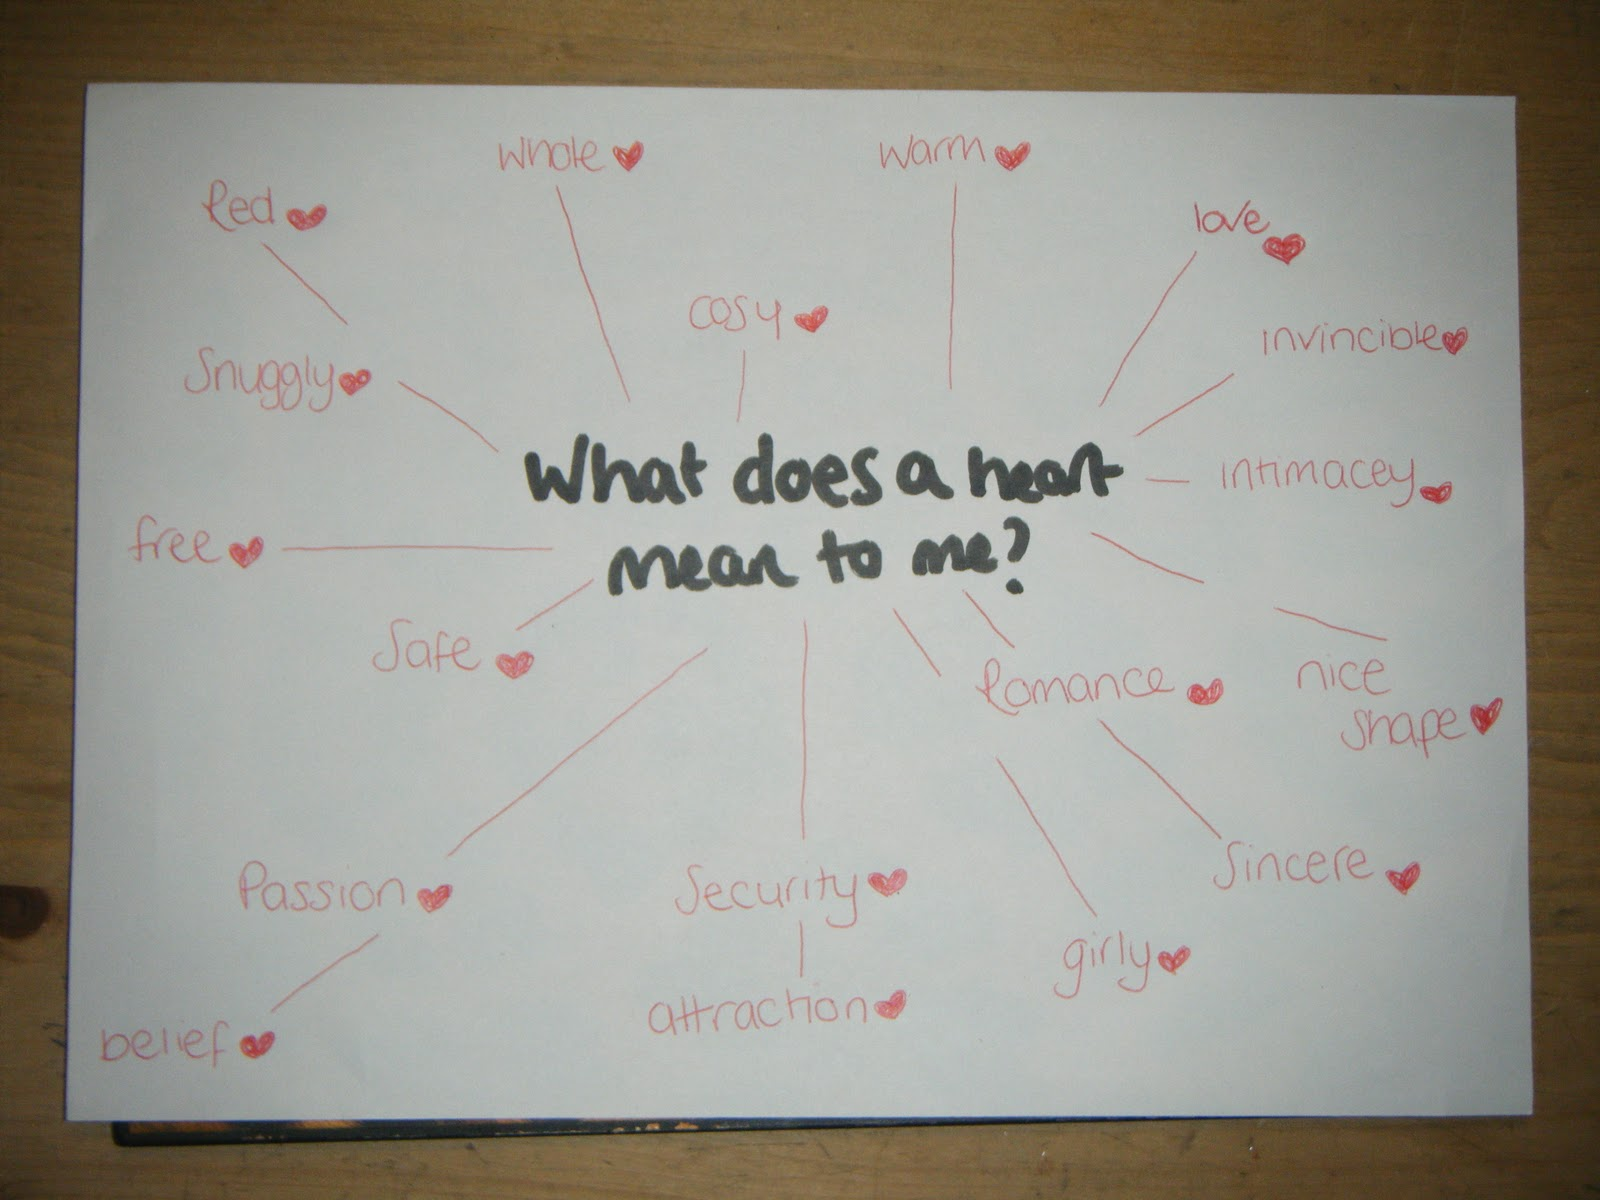 Hollie samantha nickson photography blog spider diagram ideas i decided to start off my research i would make brainstorm a spider diagram asking the question what a heart means to you ccuart Image collections